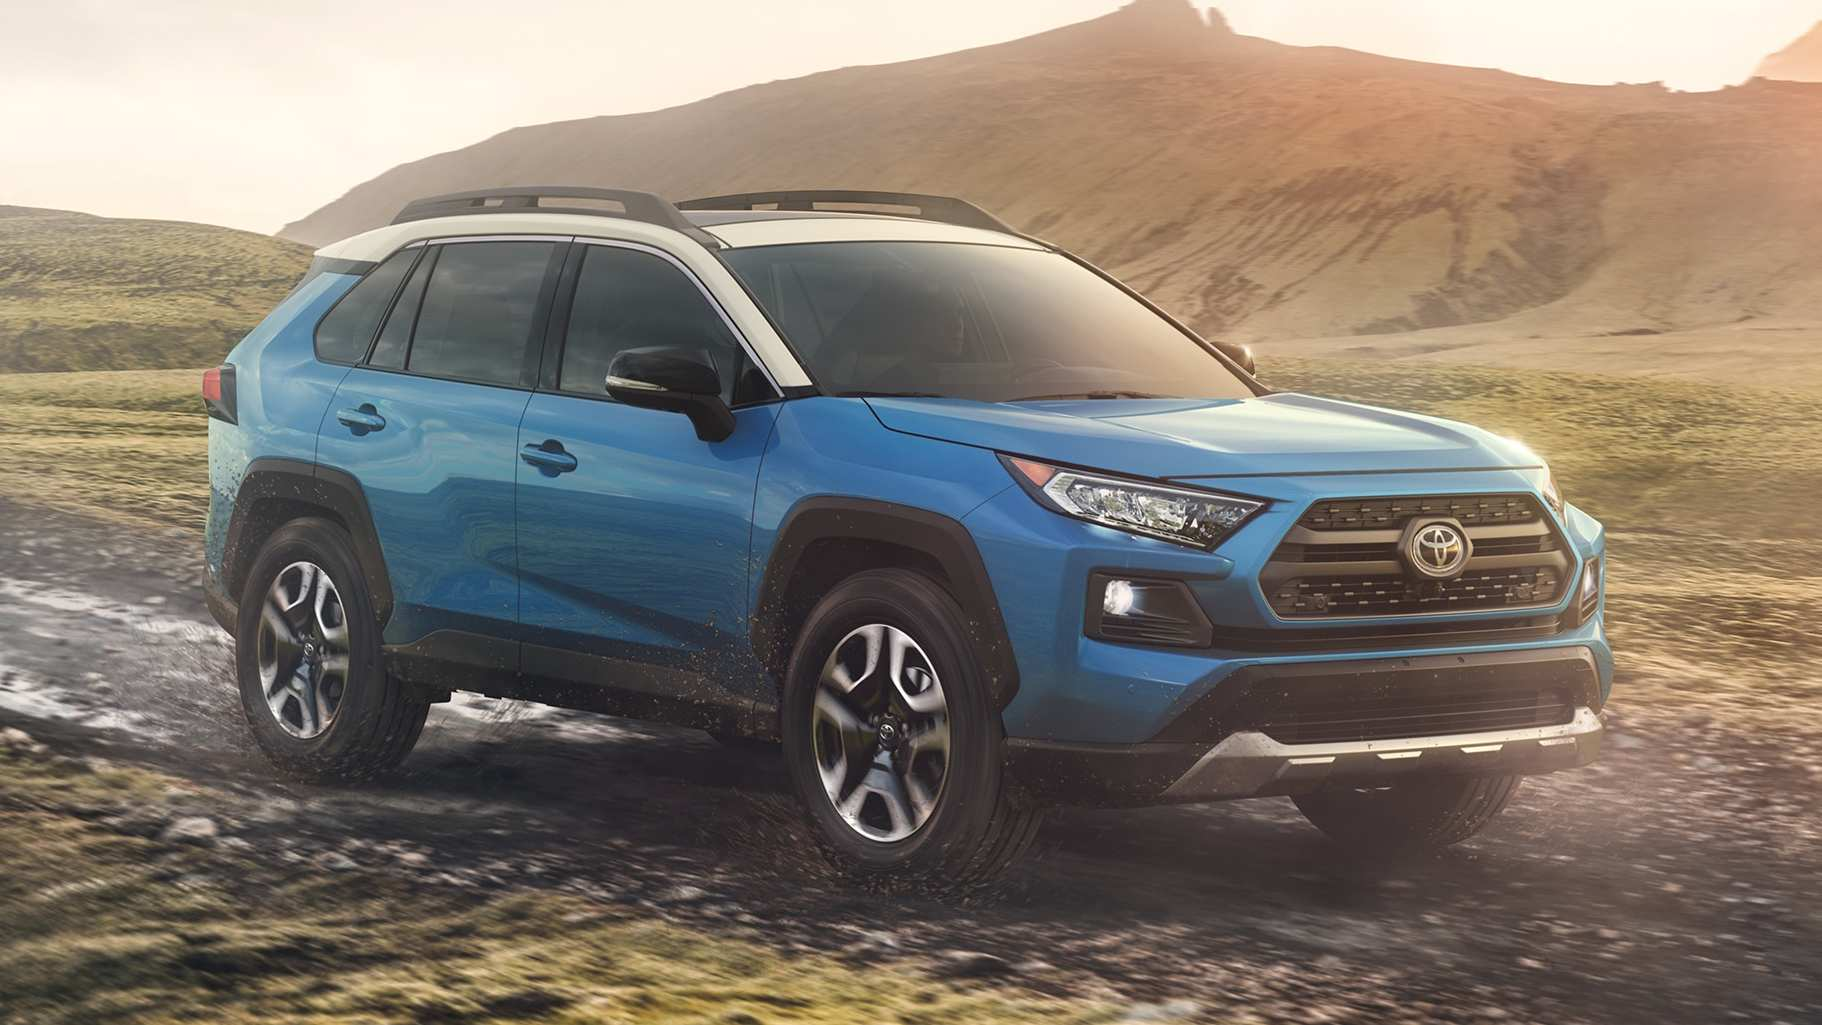 40 All New Toyota 2019 Mexico Style by Toyota 2019 Mexico